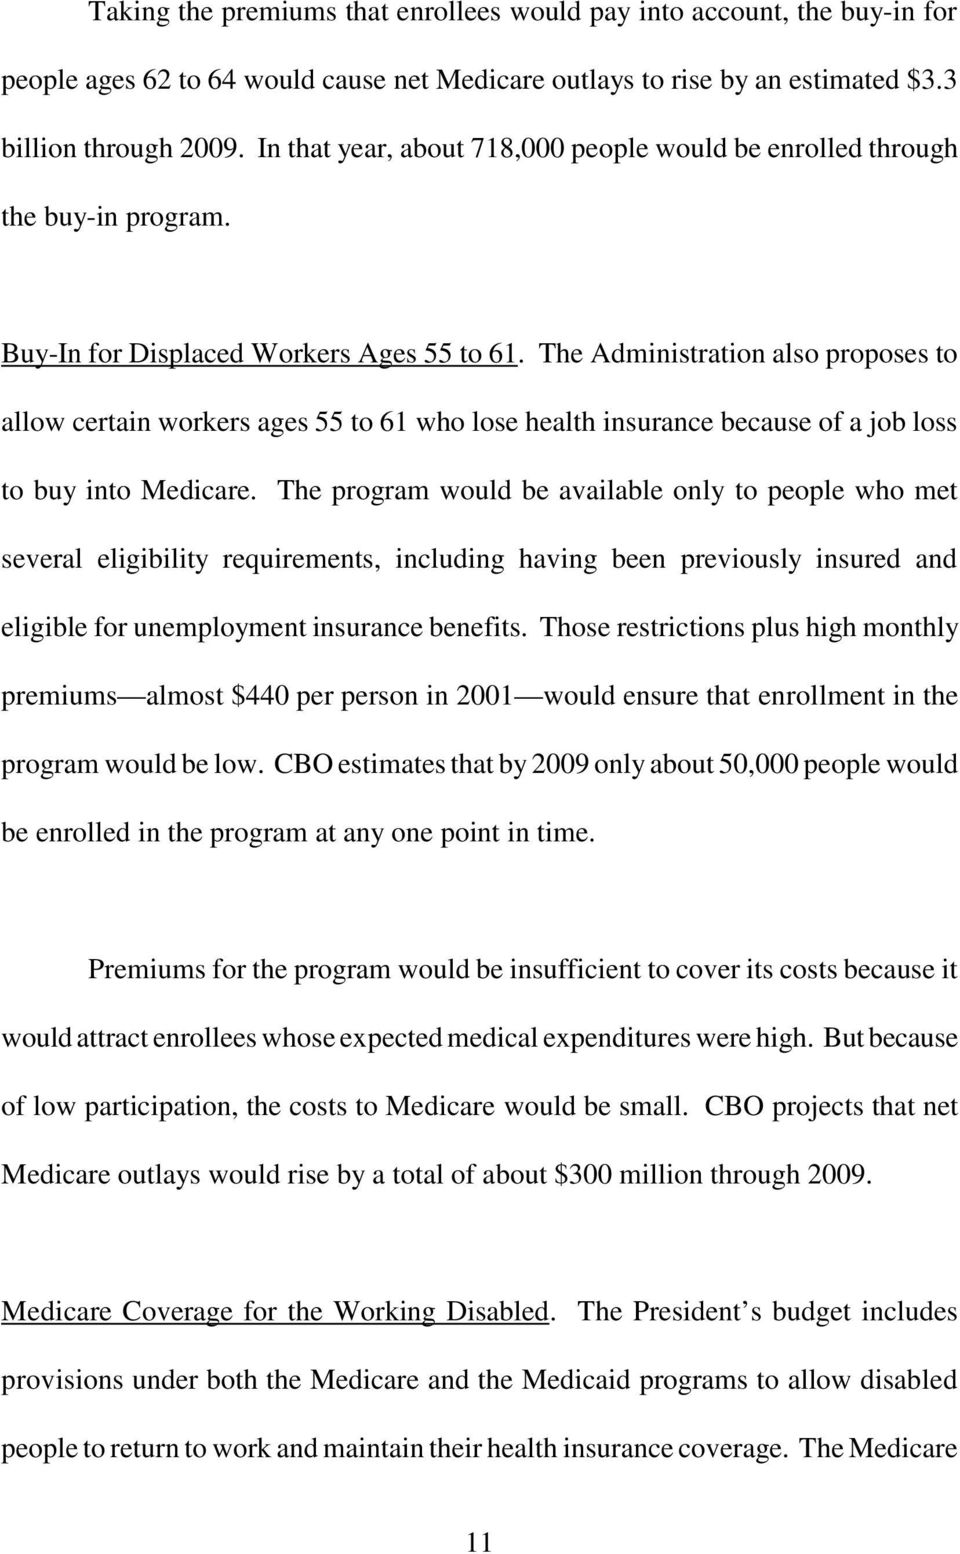 The Administration also proposes to allow certain workers ages 55 to 61 who lose health insurance because of a job loss to buy into Medicare.